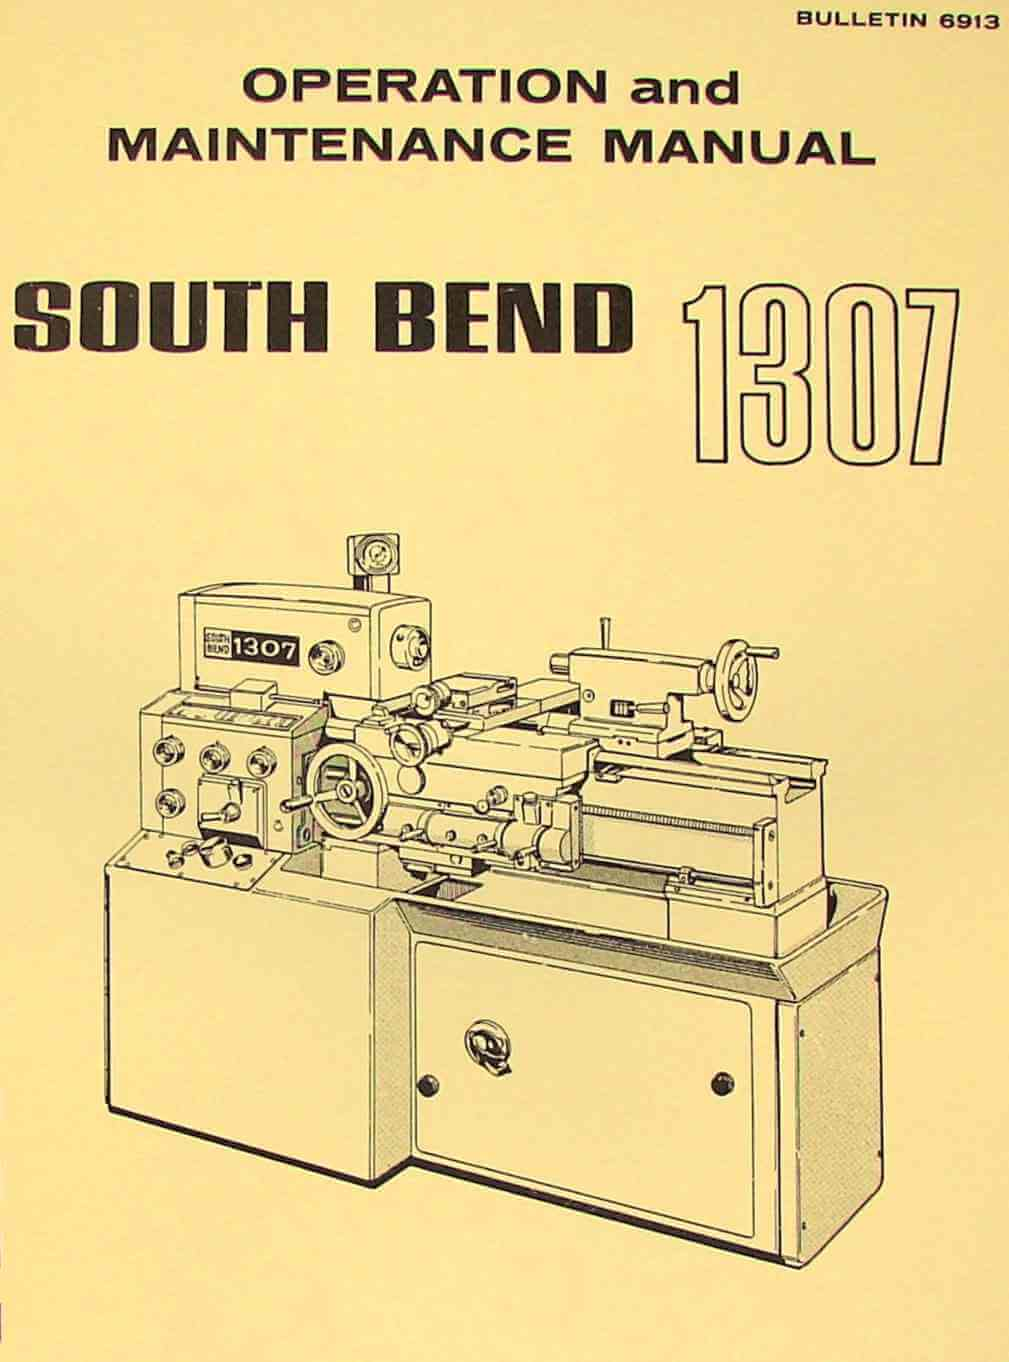 South Bend Lathe Taper Attachment Instructions